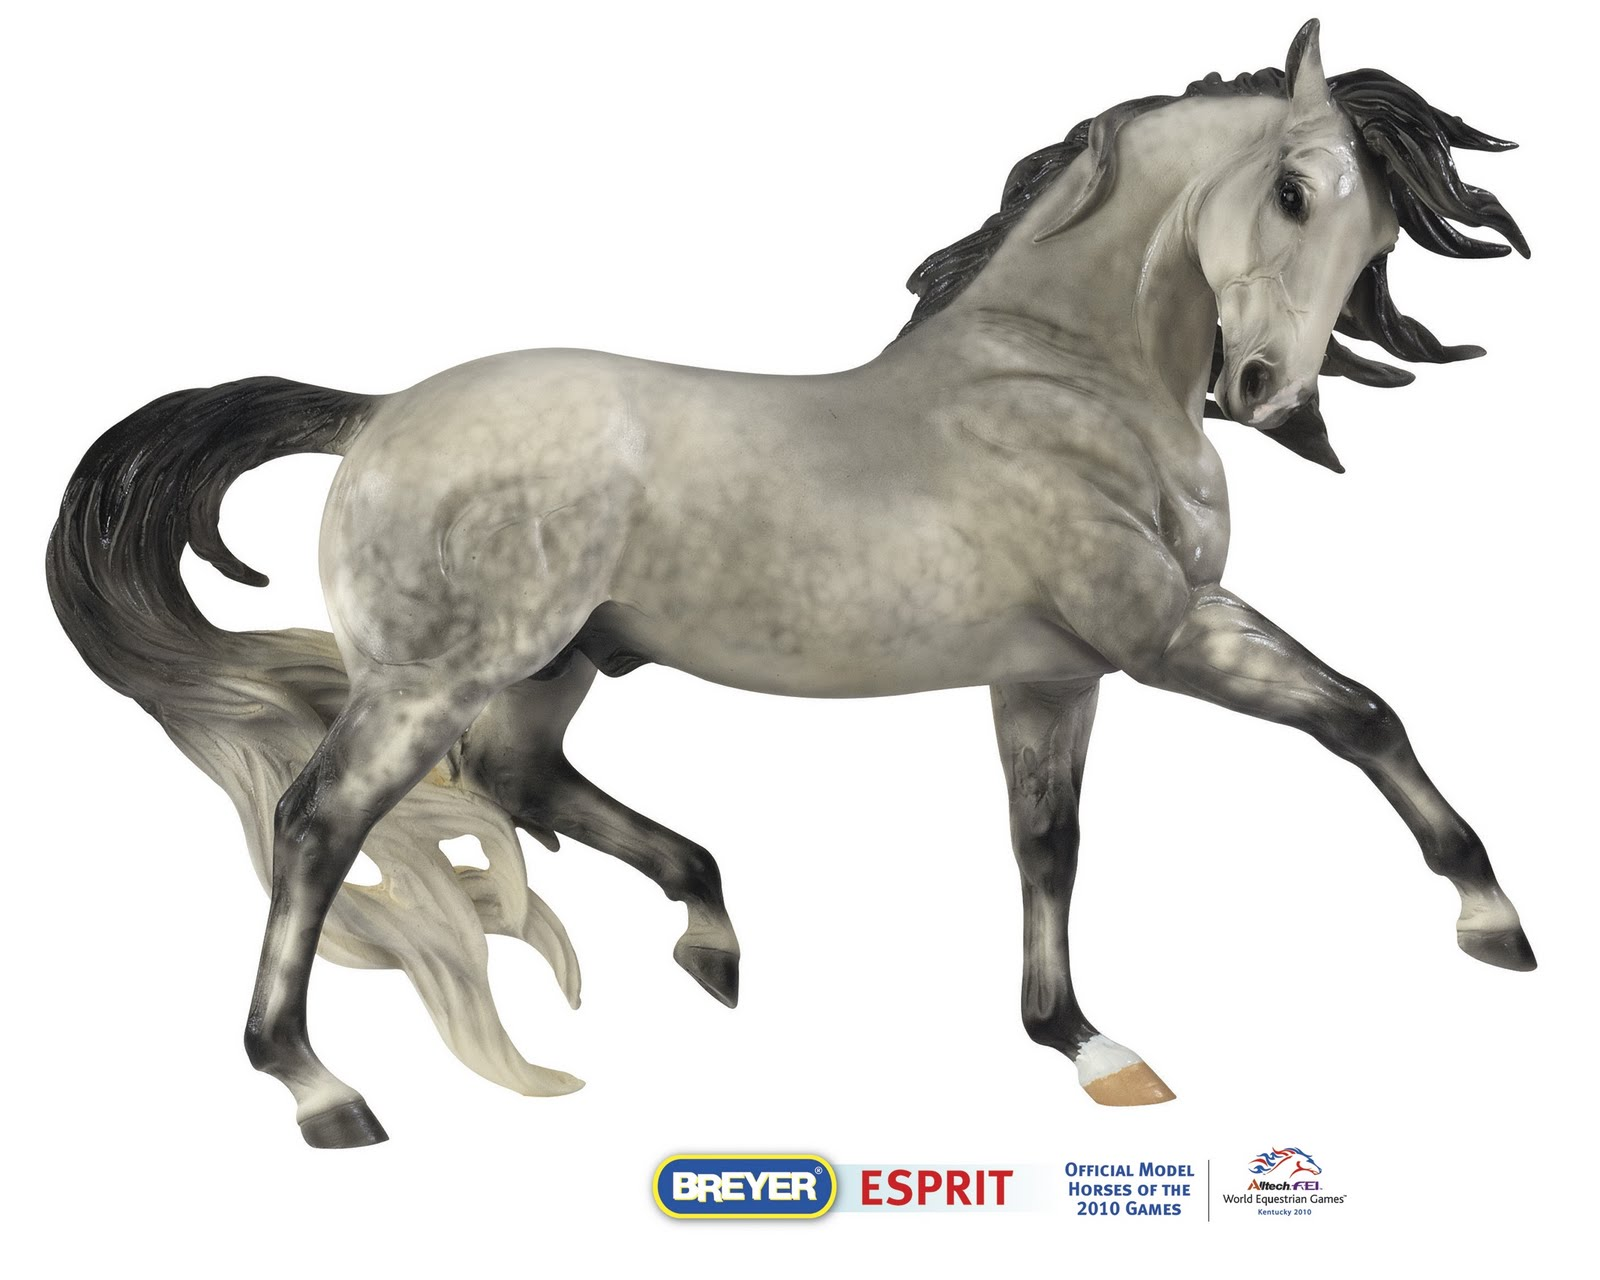 Alltech Fei World Equestrian Games Are You A Fan Of